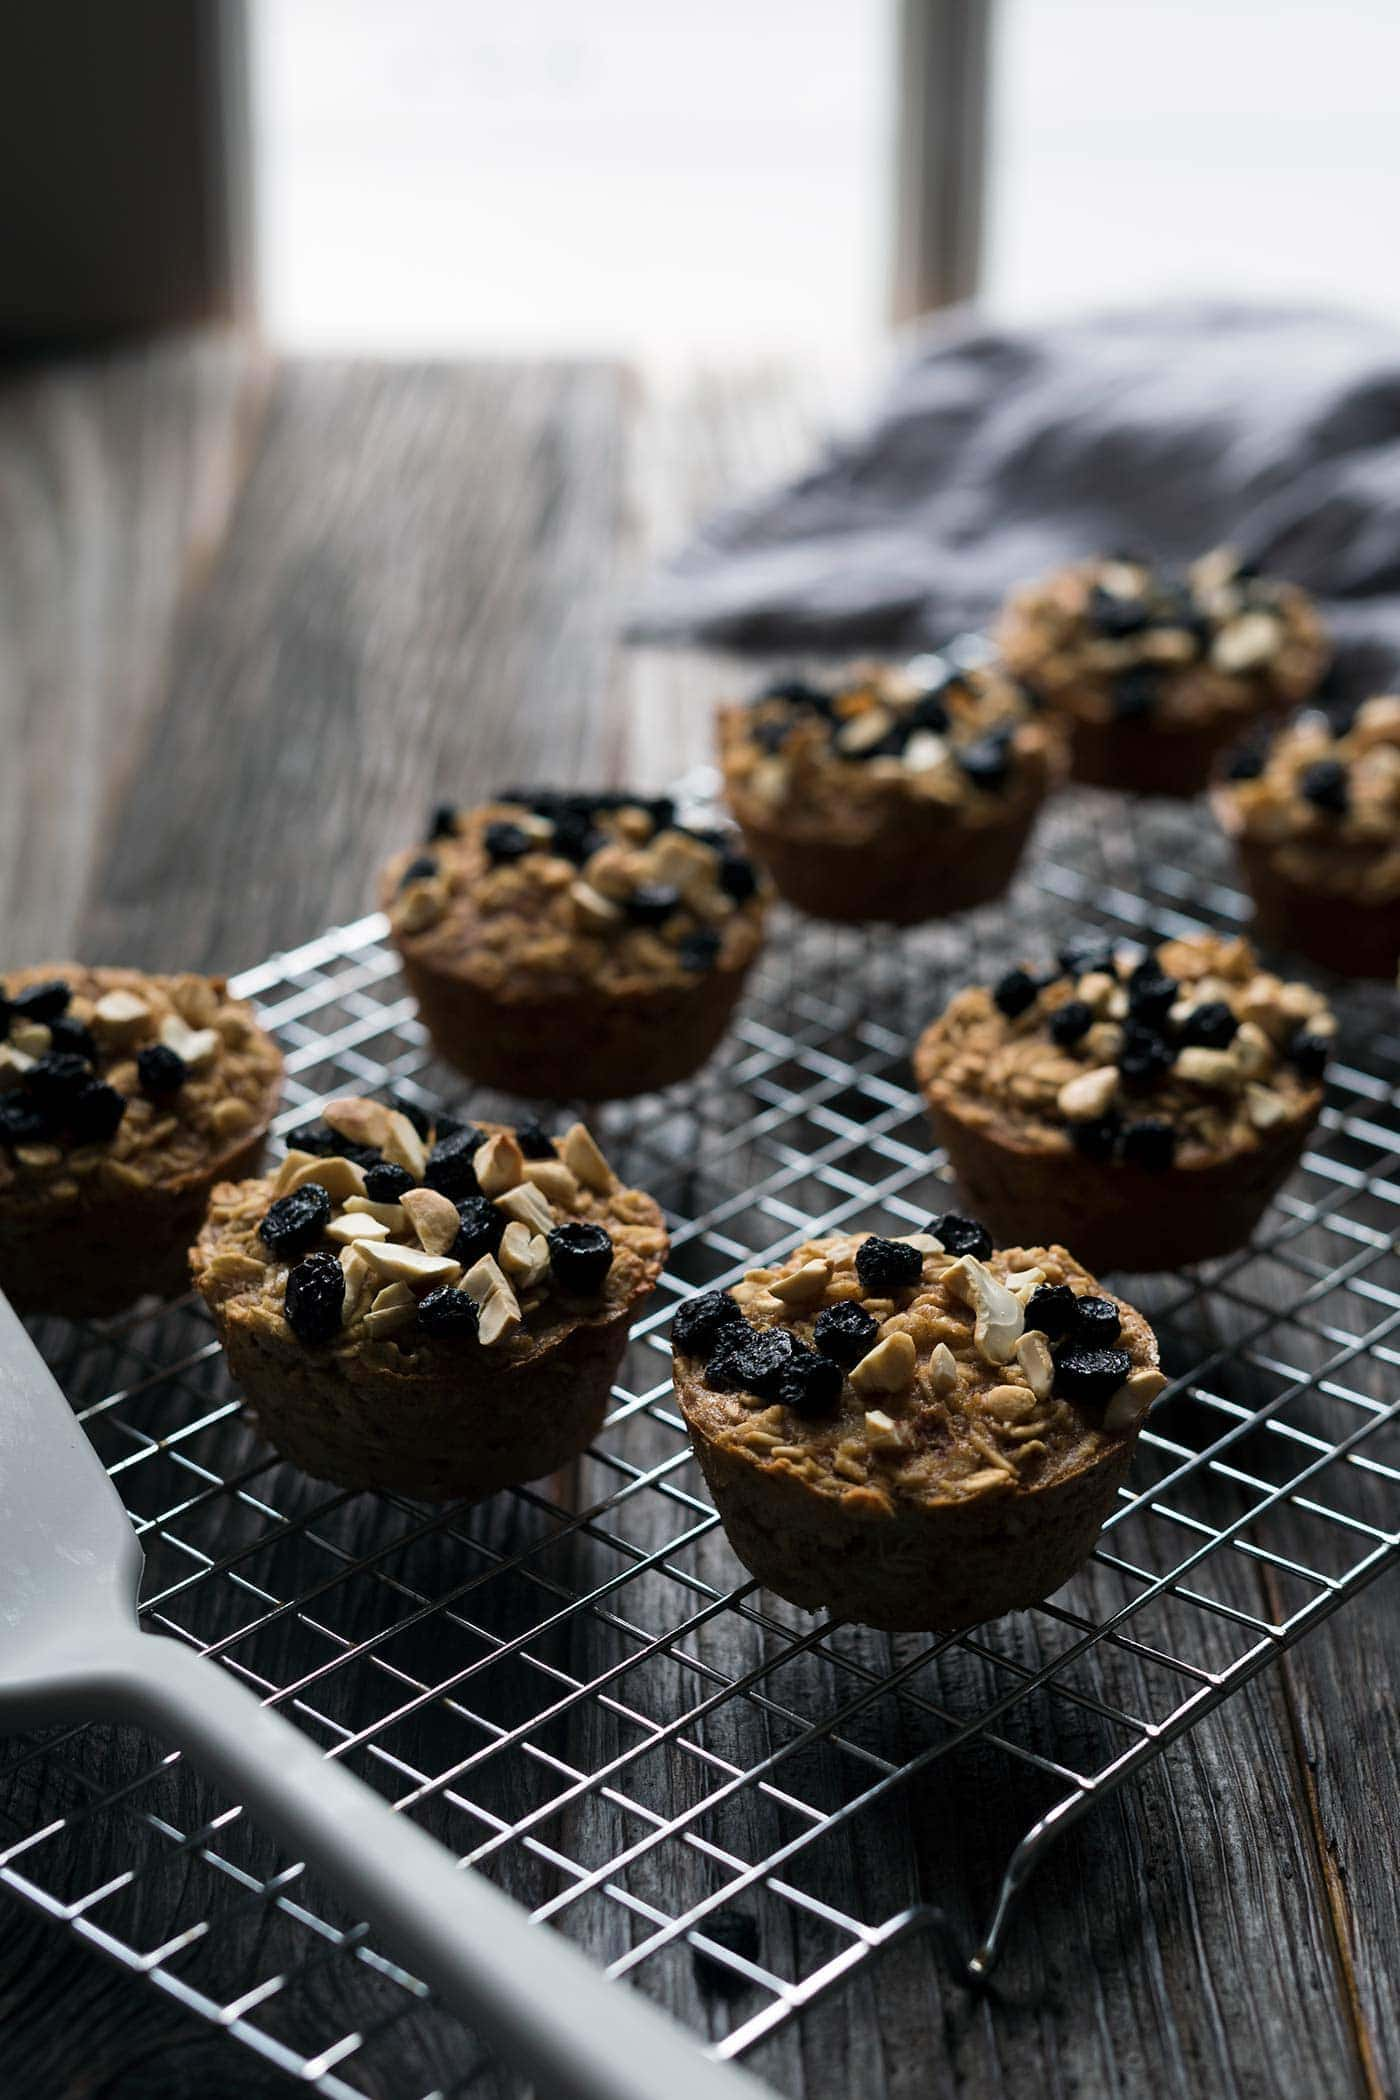 Baked Oatmeal Cups are wonderful for a quick breakfast or midday snack. They come together quickly and freeze beautifully so that you can easily store leftovers.